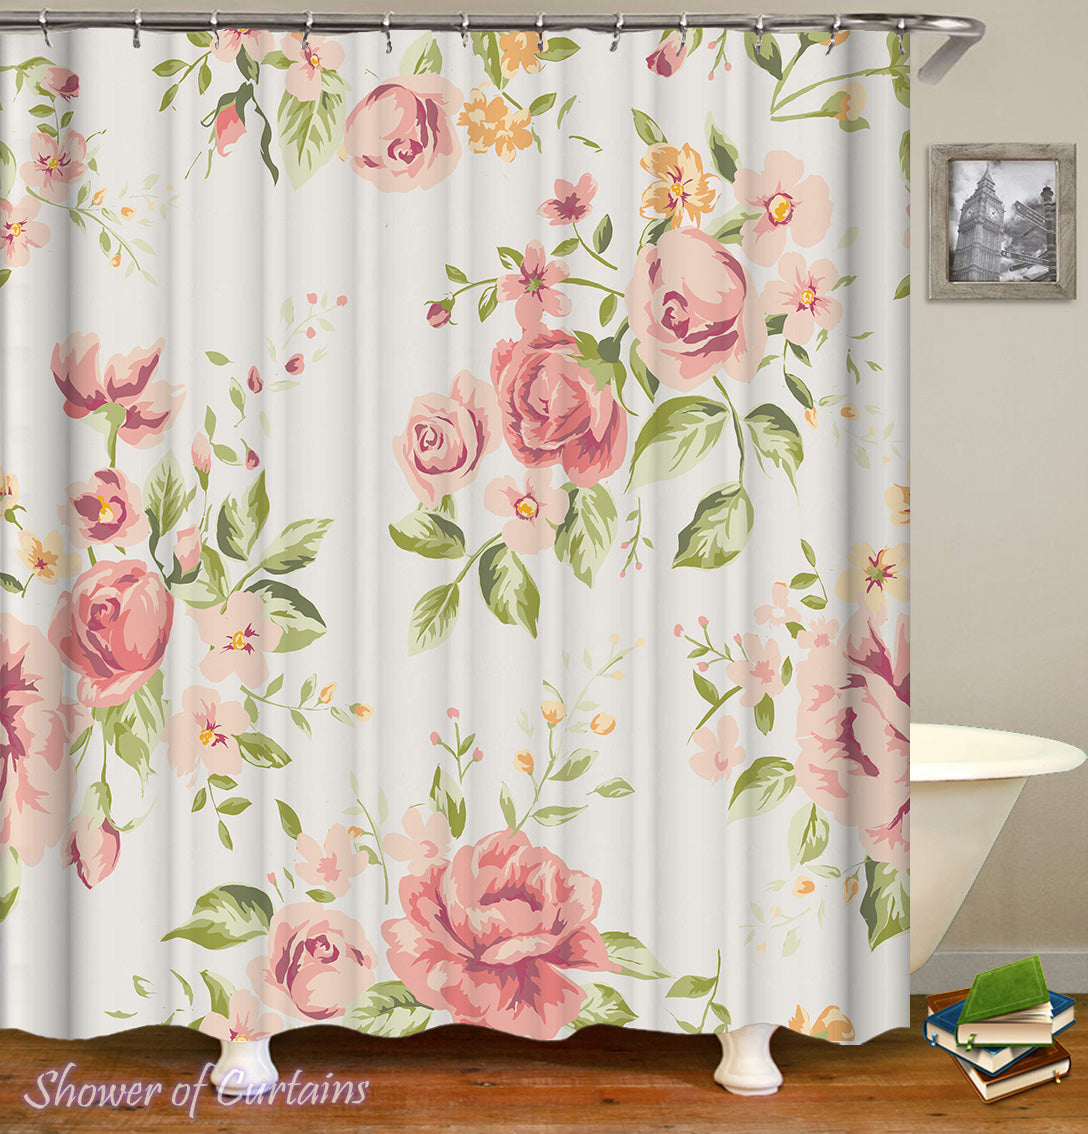 Shower Curtains | Light Pink Floral – Shower of Curtains